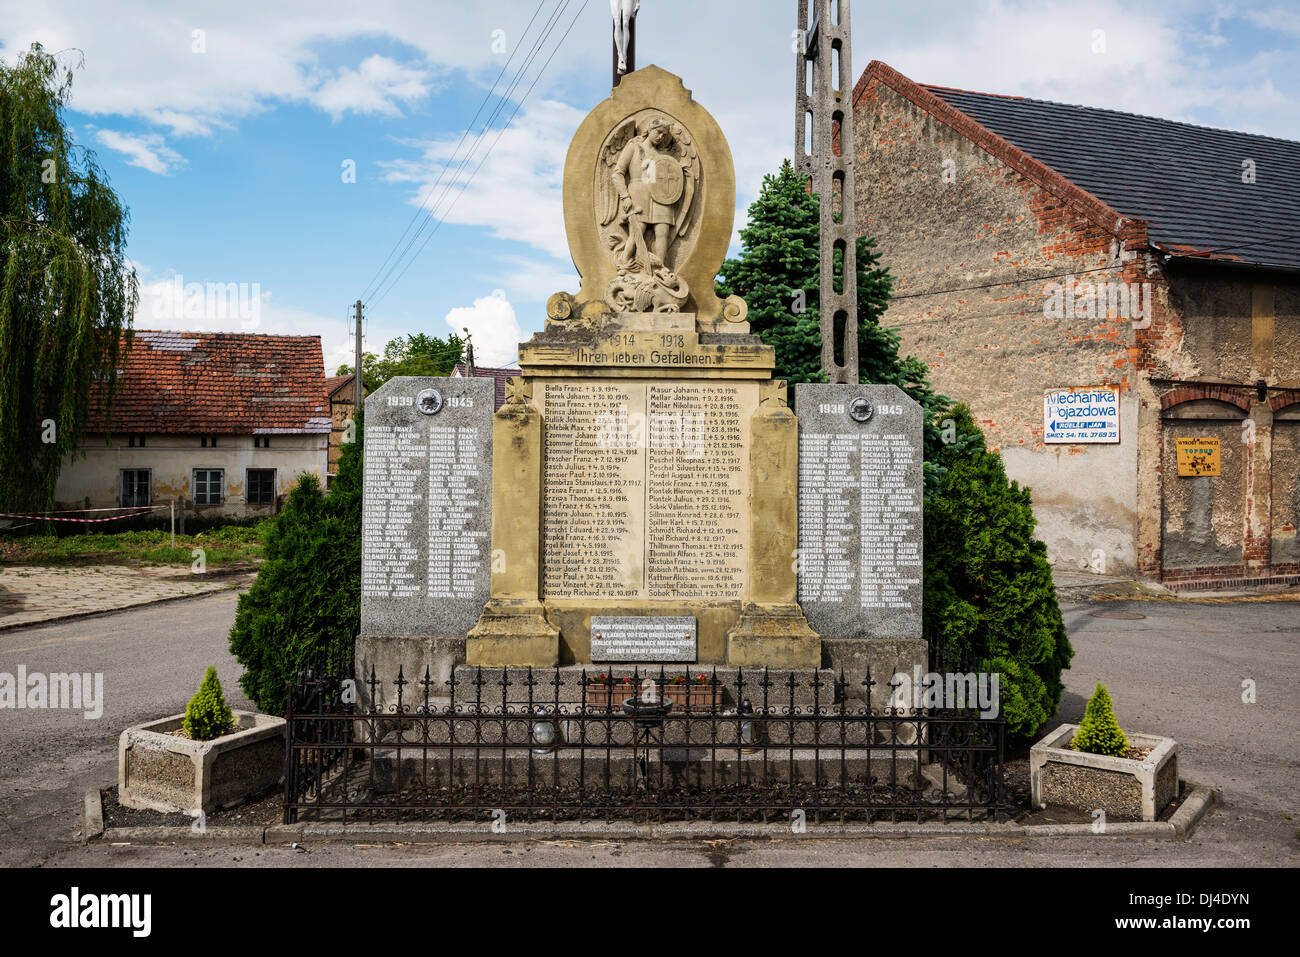 German - Polish WW1 and WW2 war memorial stone, Formerly Schmitsch, Oberschlesien, Germany, Now Scmicz, Opole Voivodship, Poland - Stock Image